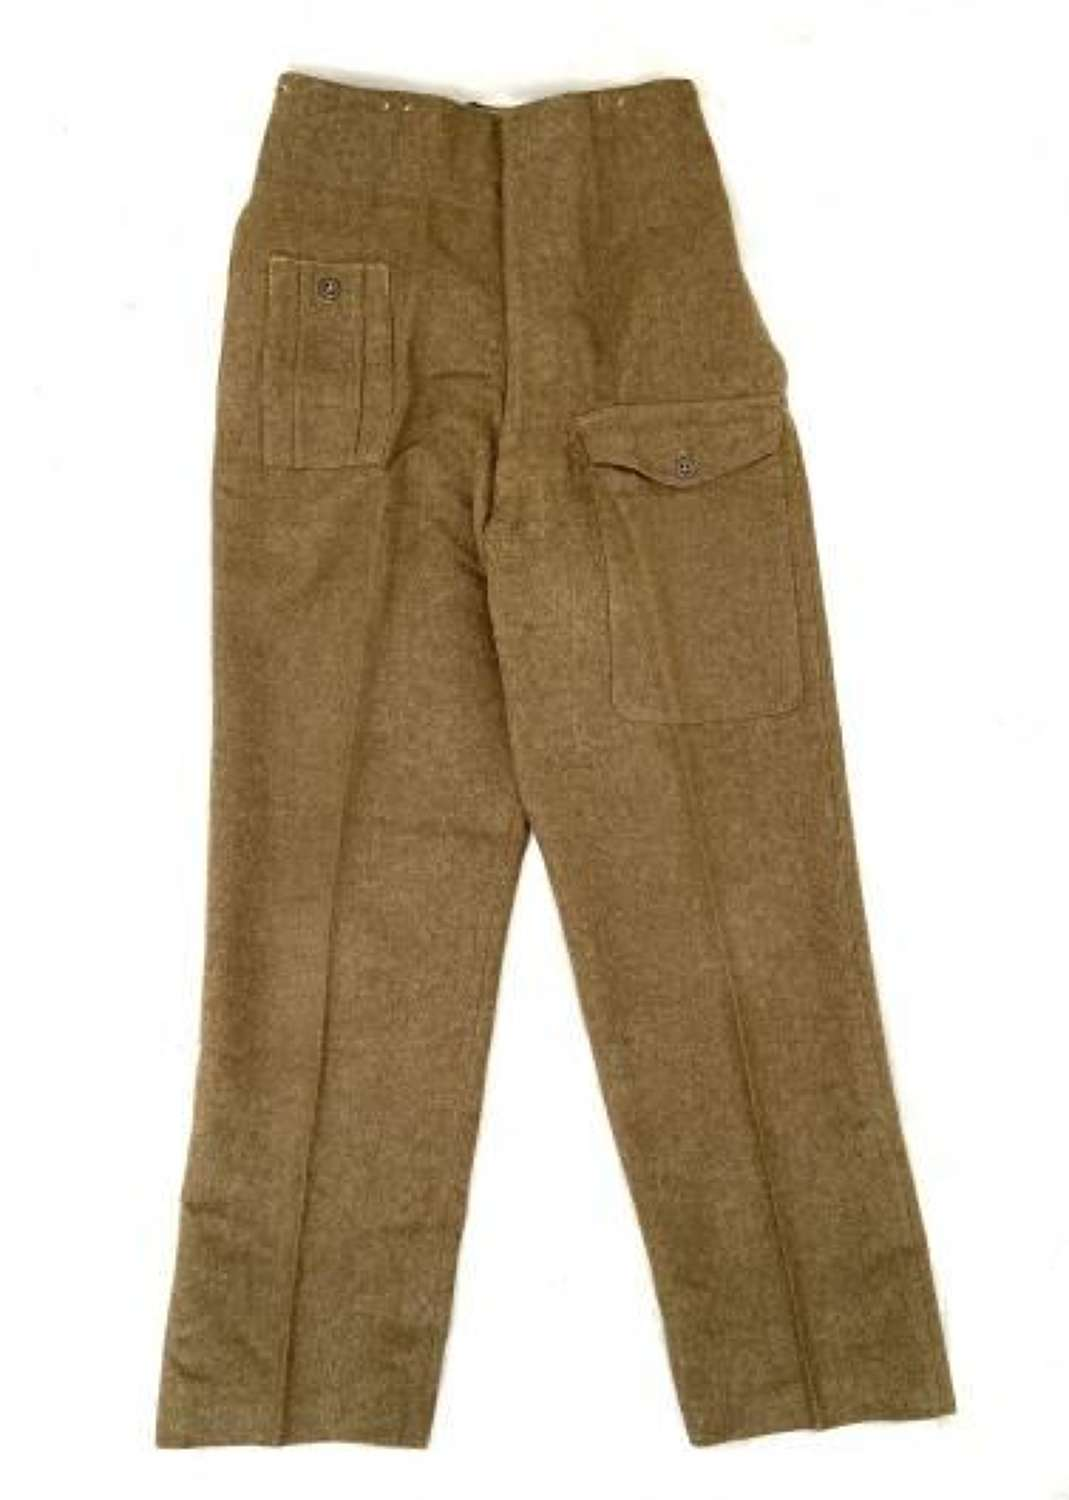 Original 1946 Dated British Army 1940 Pattern Trousers